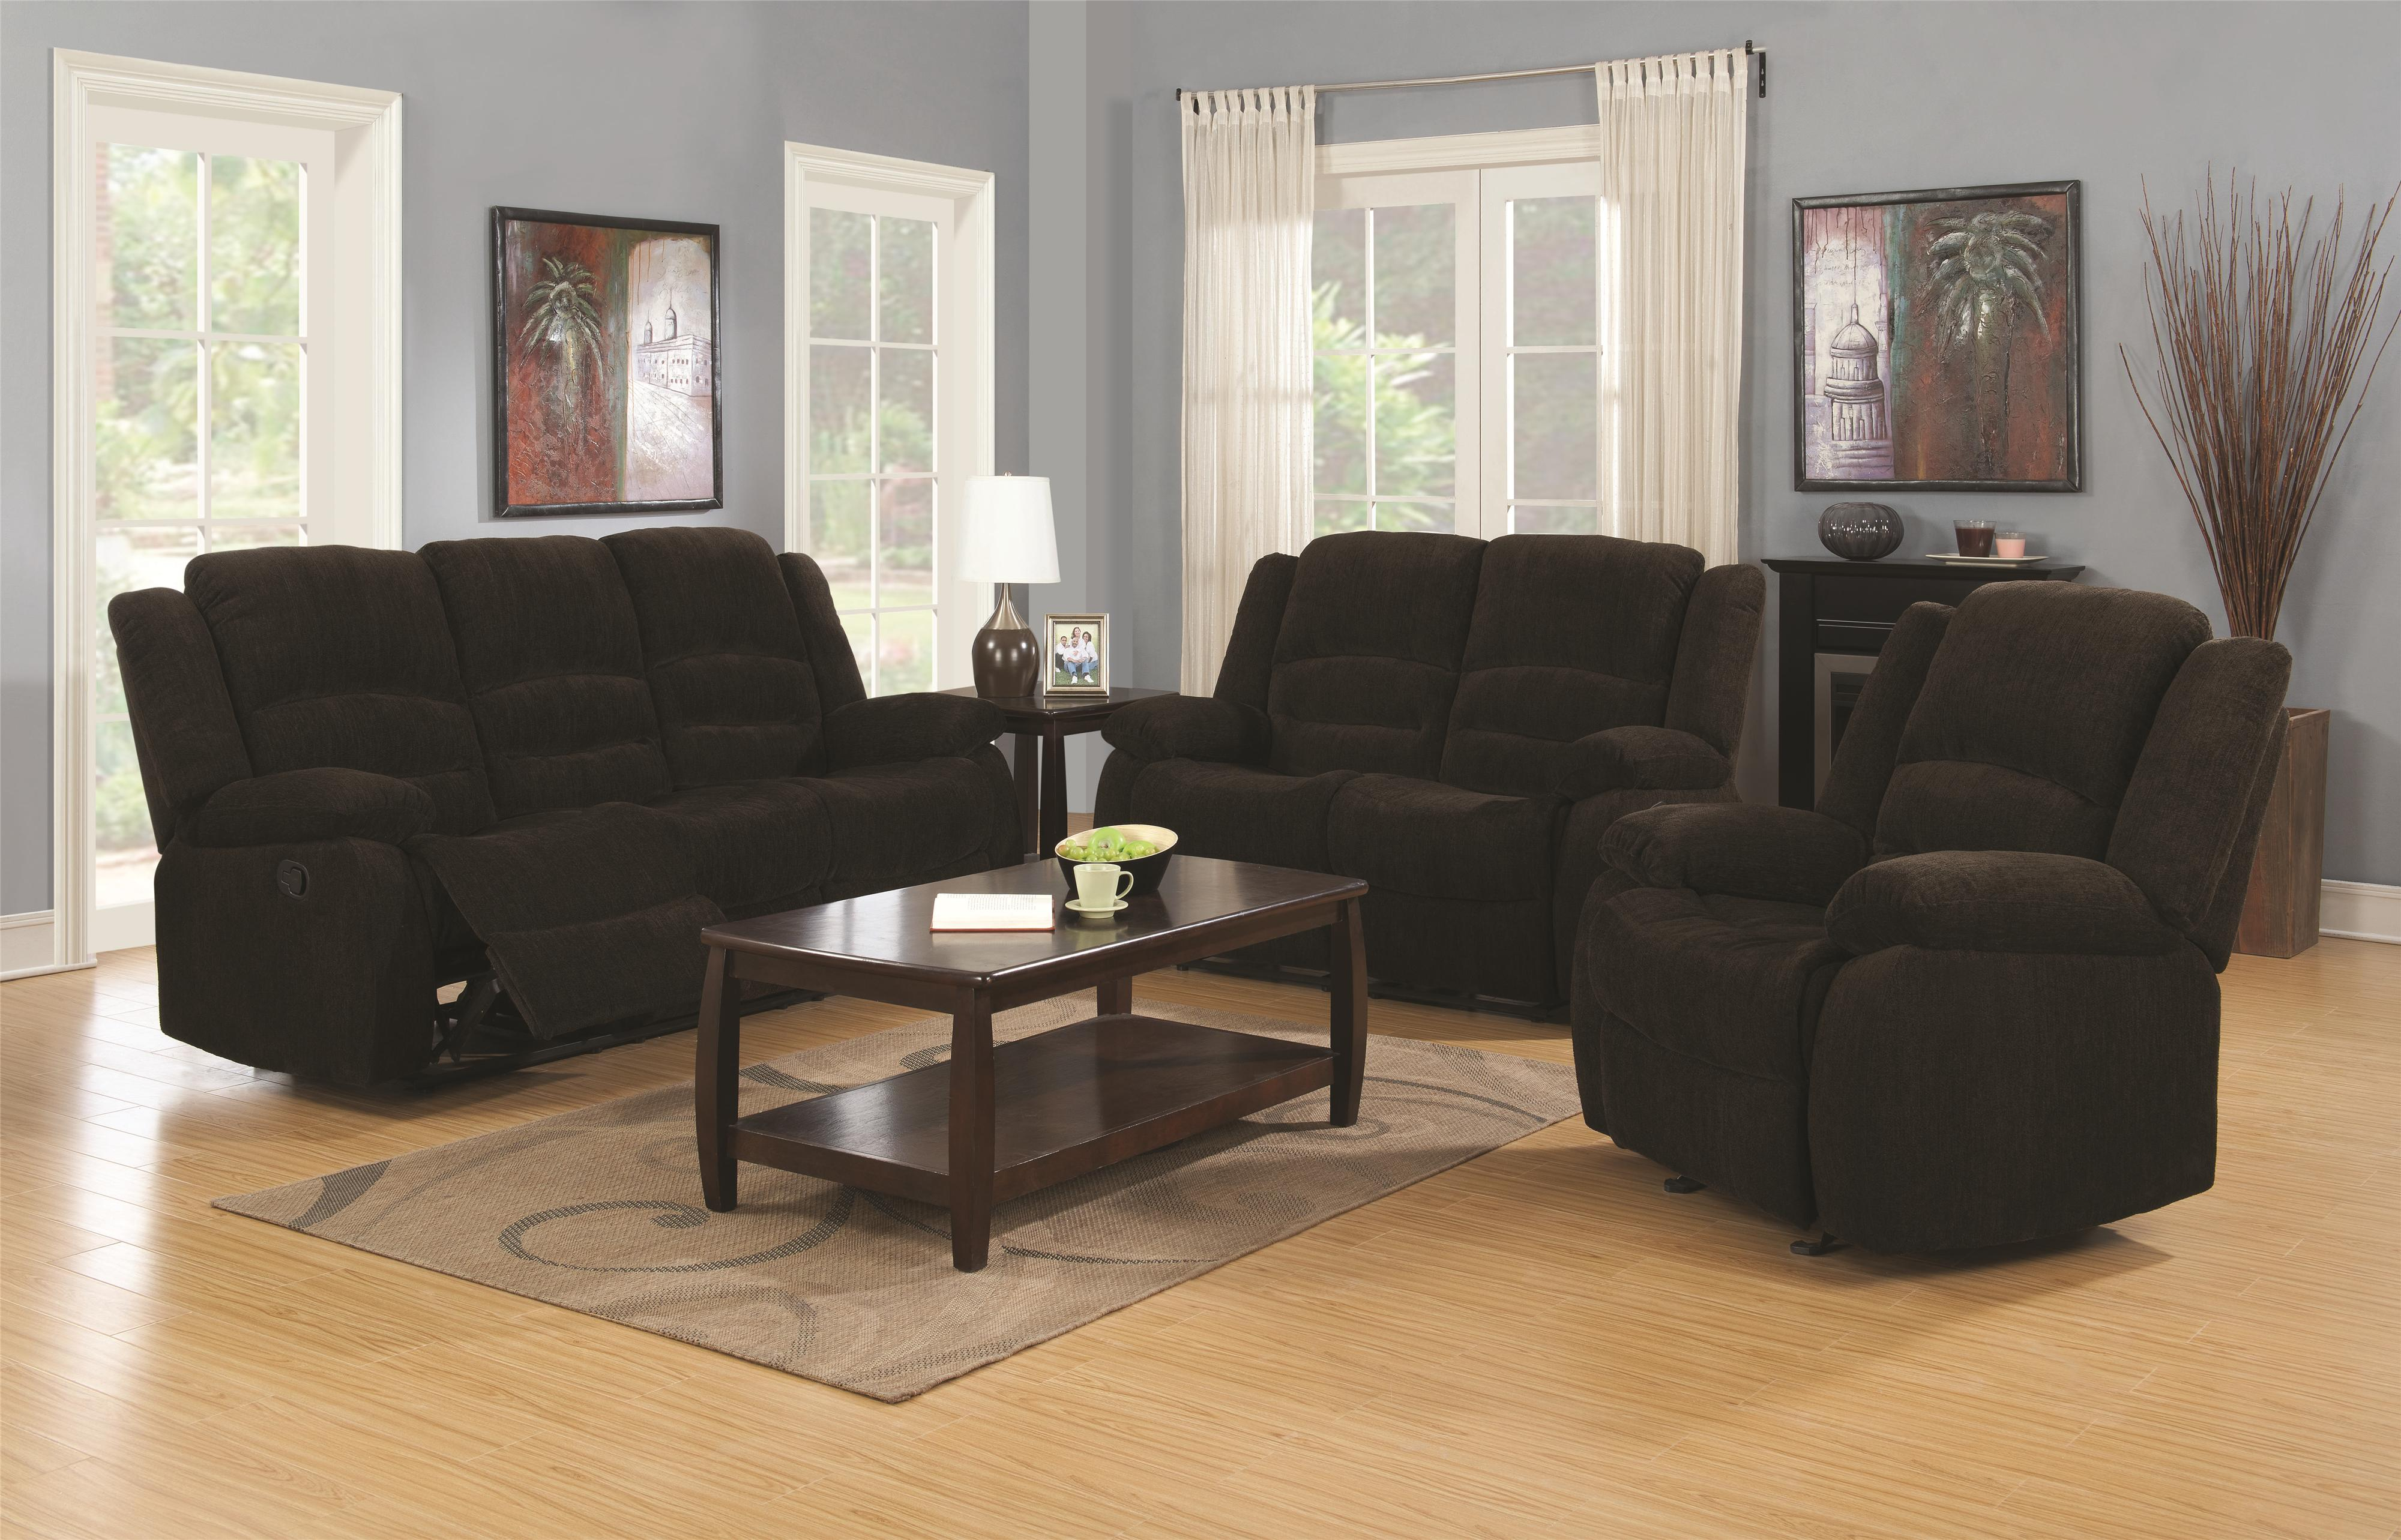 Coaster Gordon Reclining Living Room Group Value City Furniture with 10 Awesome Designs of How to Make Value City Living Room Sets